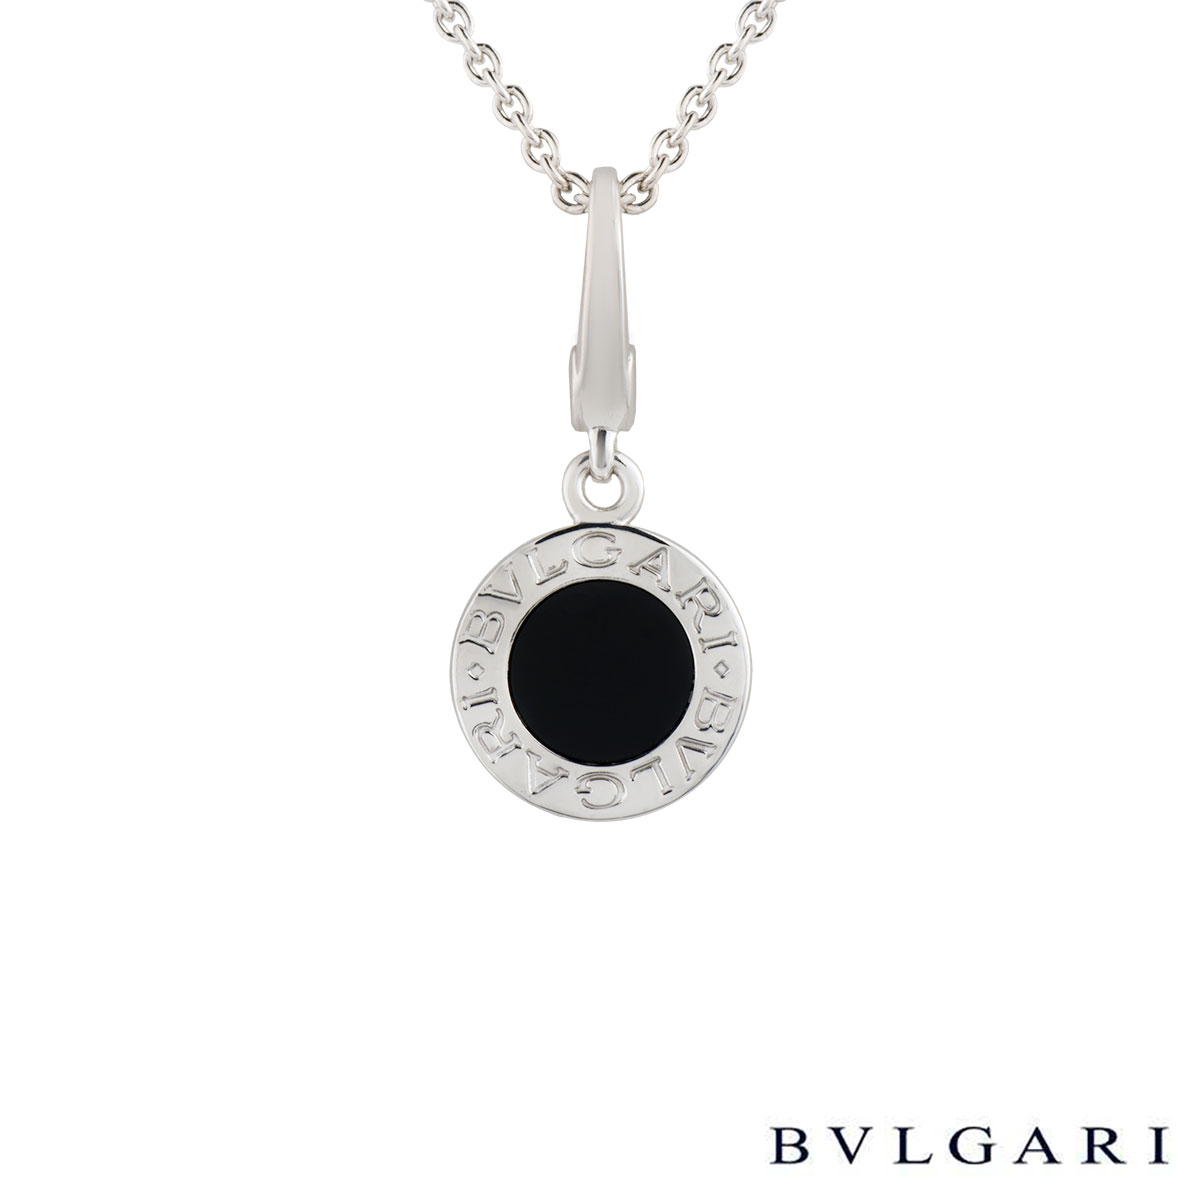 Bvlgari bvlgari white gold and onyx pendant rich diamonds of bond bvlgari bvlgari white gold and onyx pendant aloadofball Choice Image